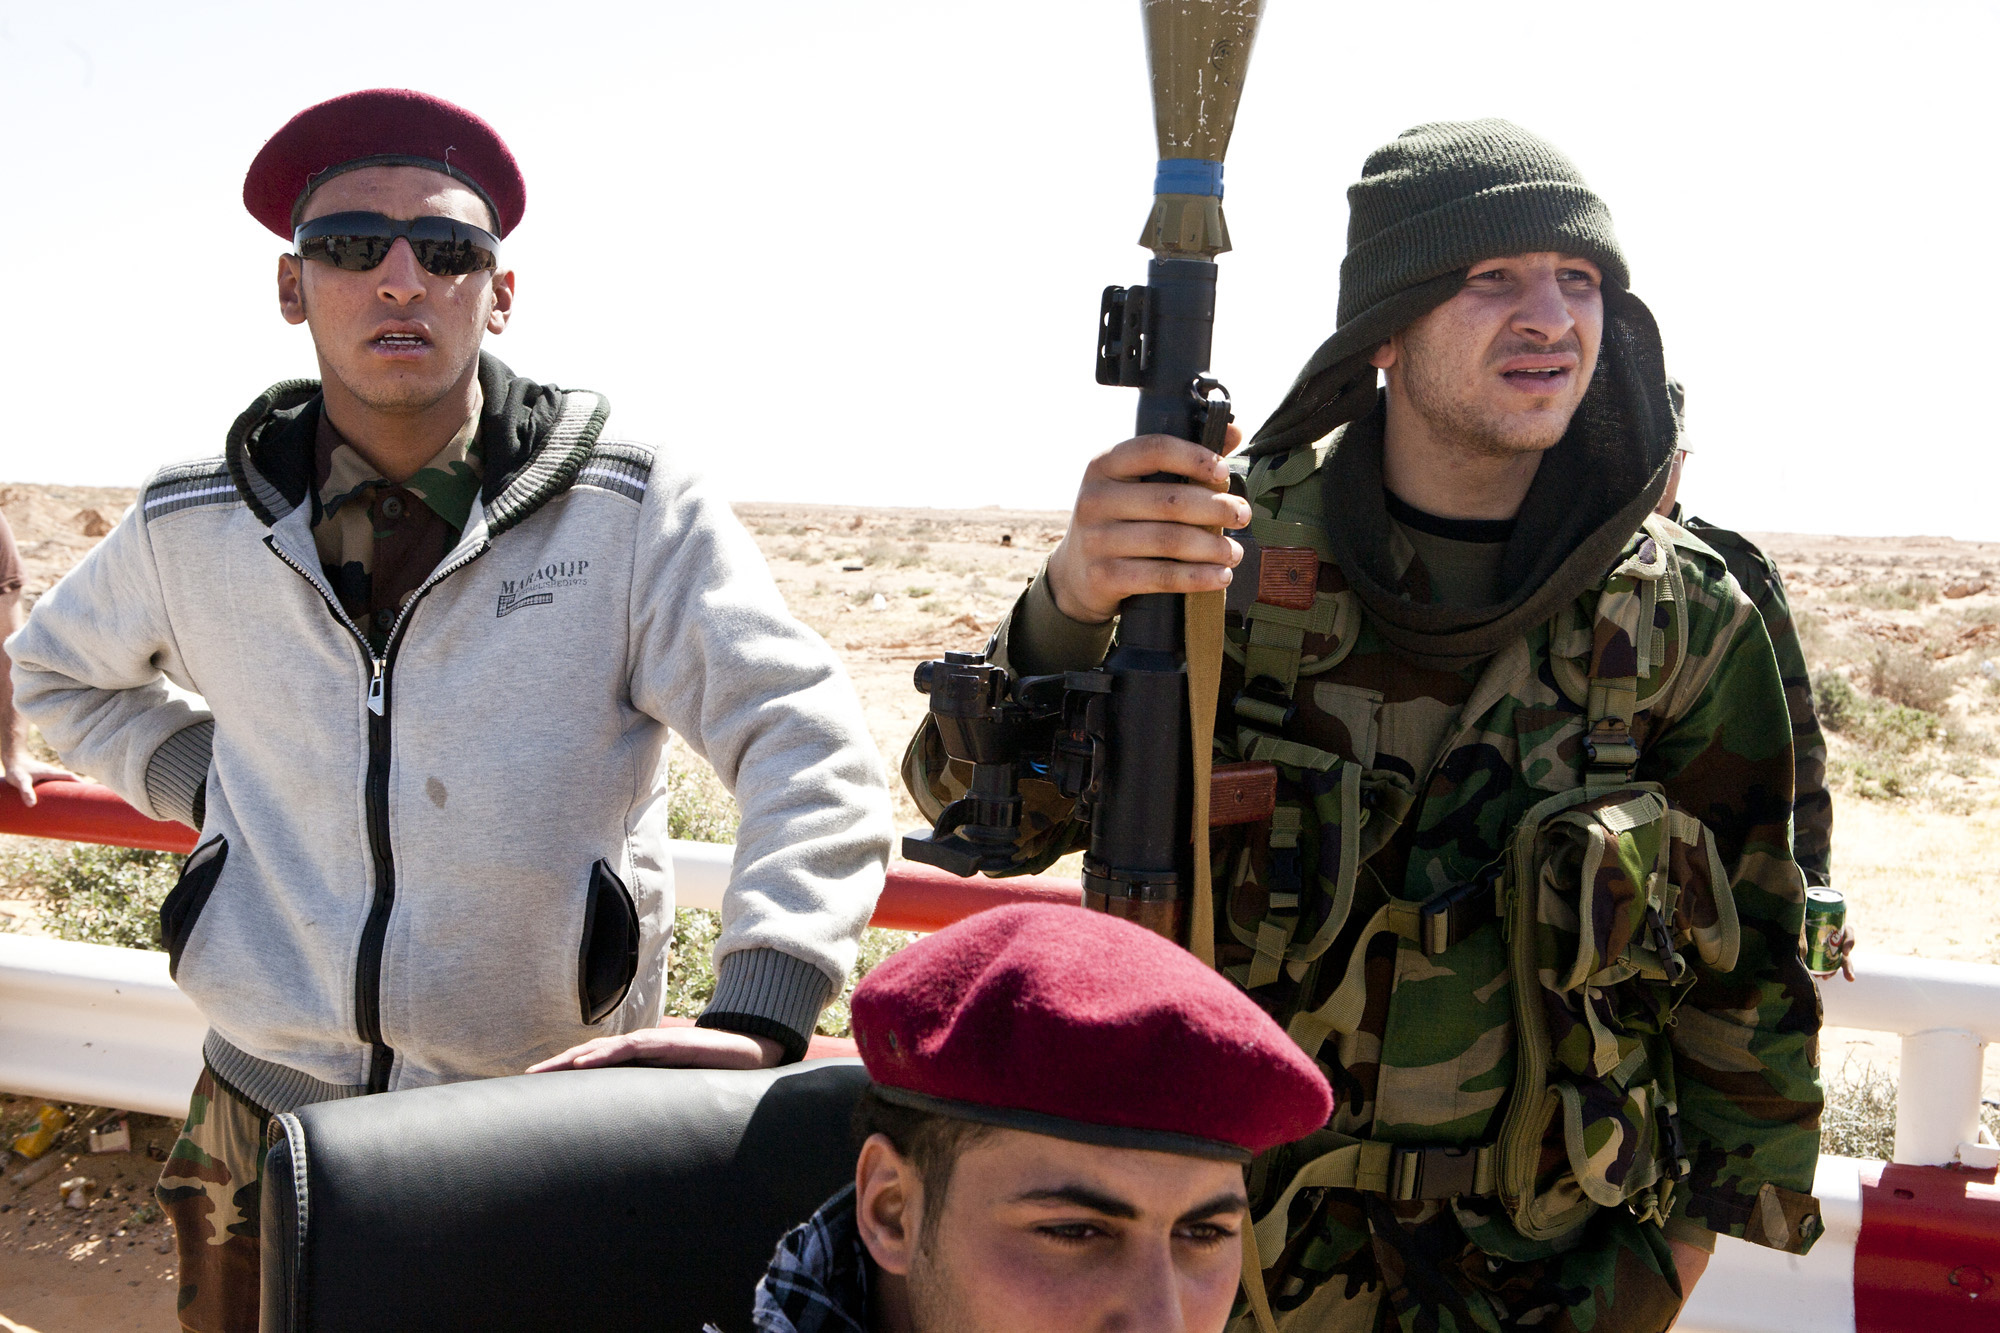 Rebels at a check point on the road between Benghazi and Ras Lanouf. March 2011